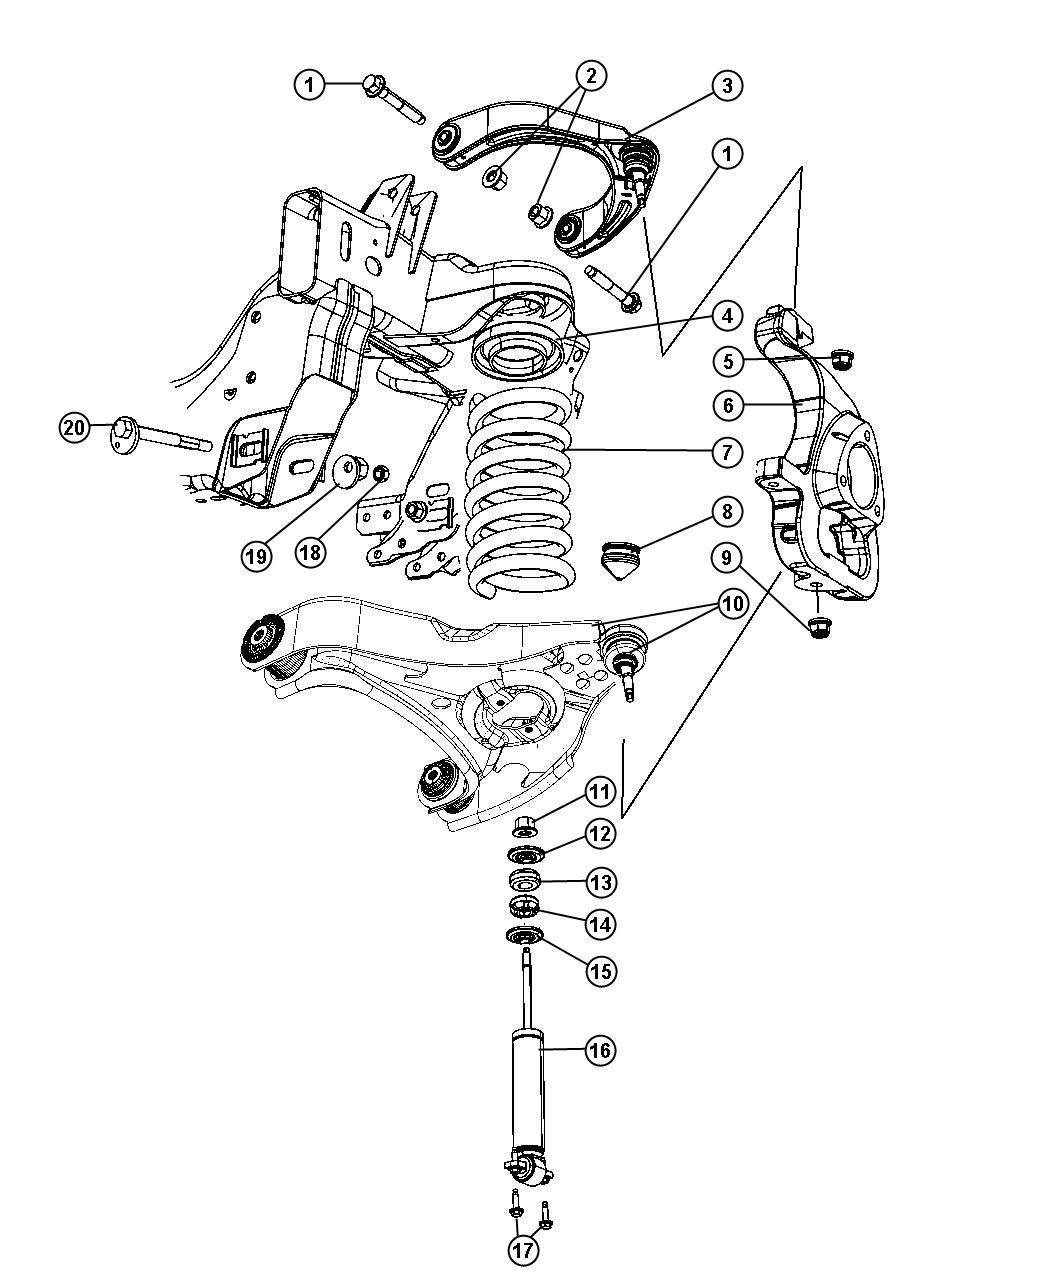 dodge ram 1500 front suspension diagram